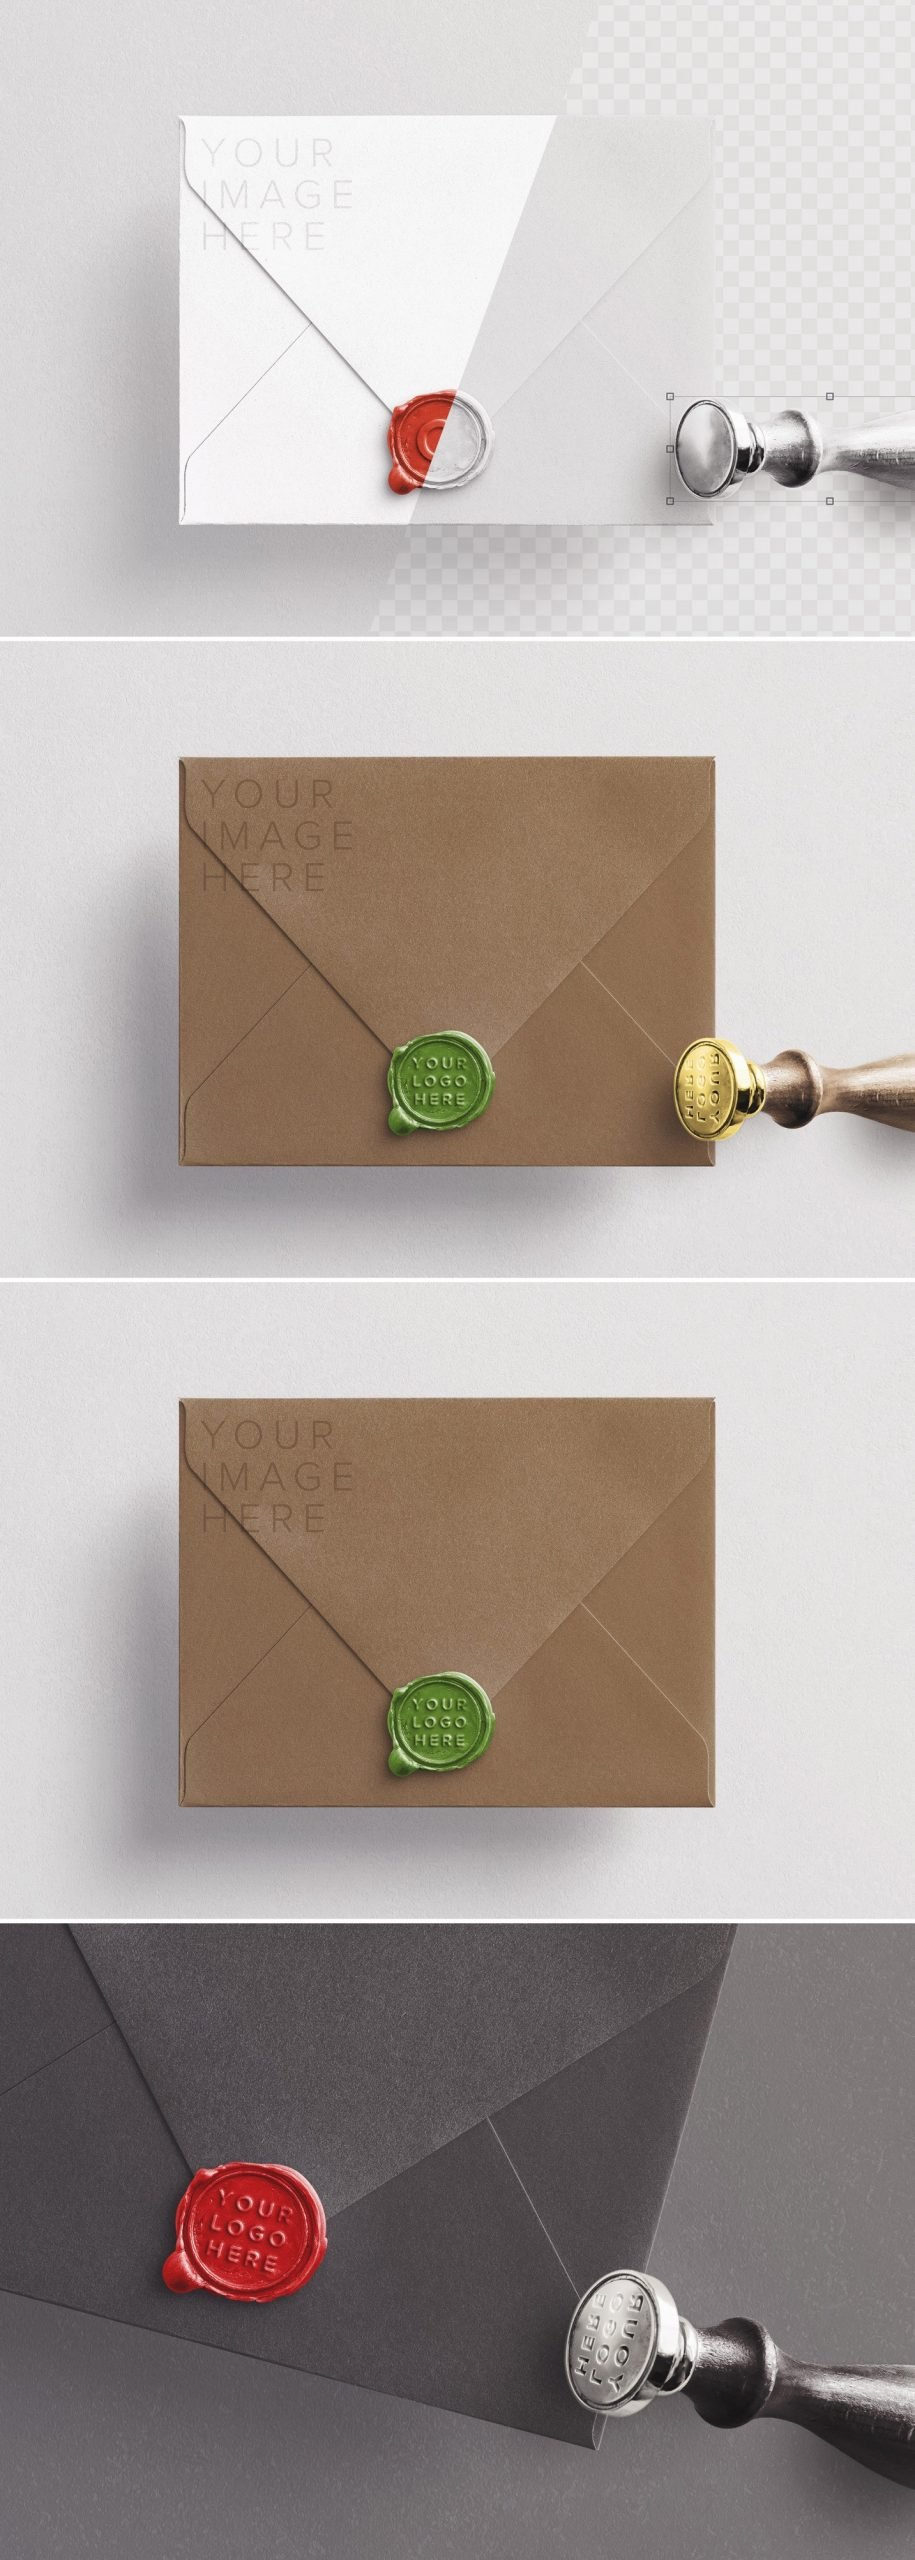 wax seal and stamp w envelope mockup preview1 1 scaled